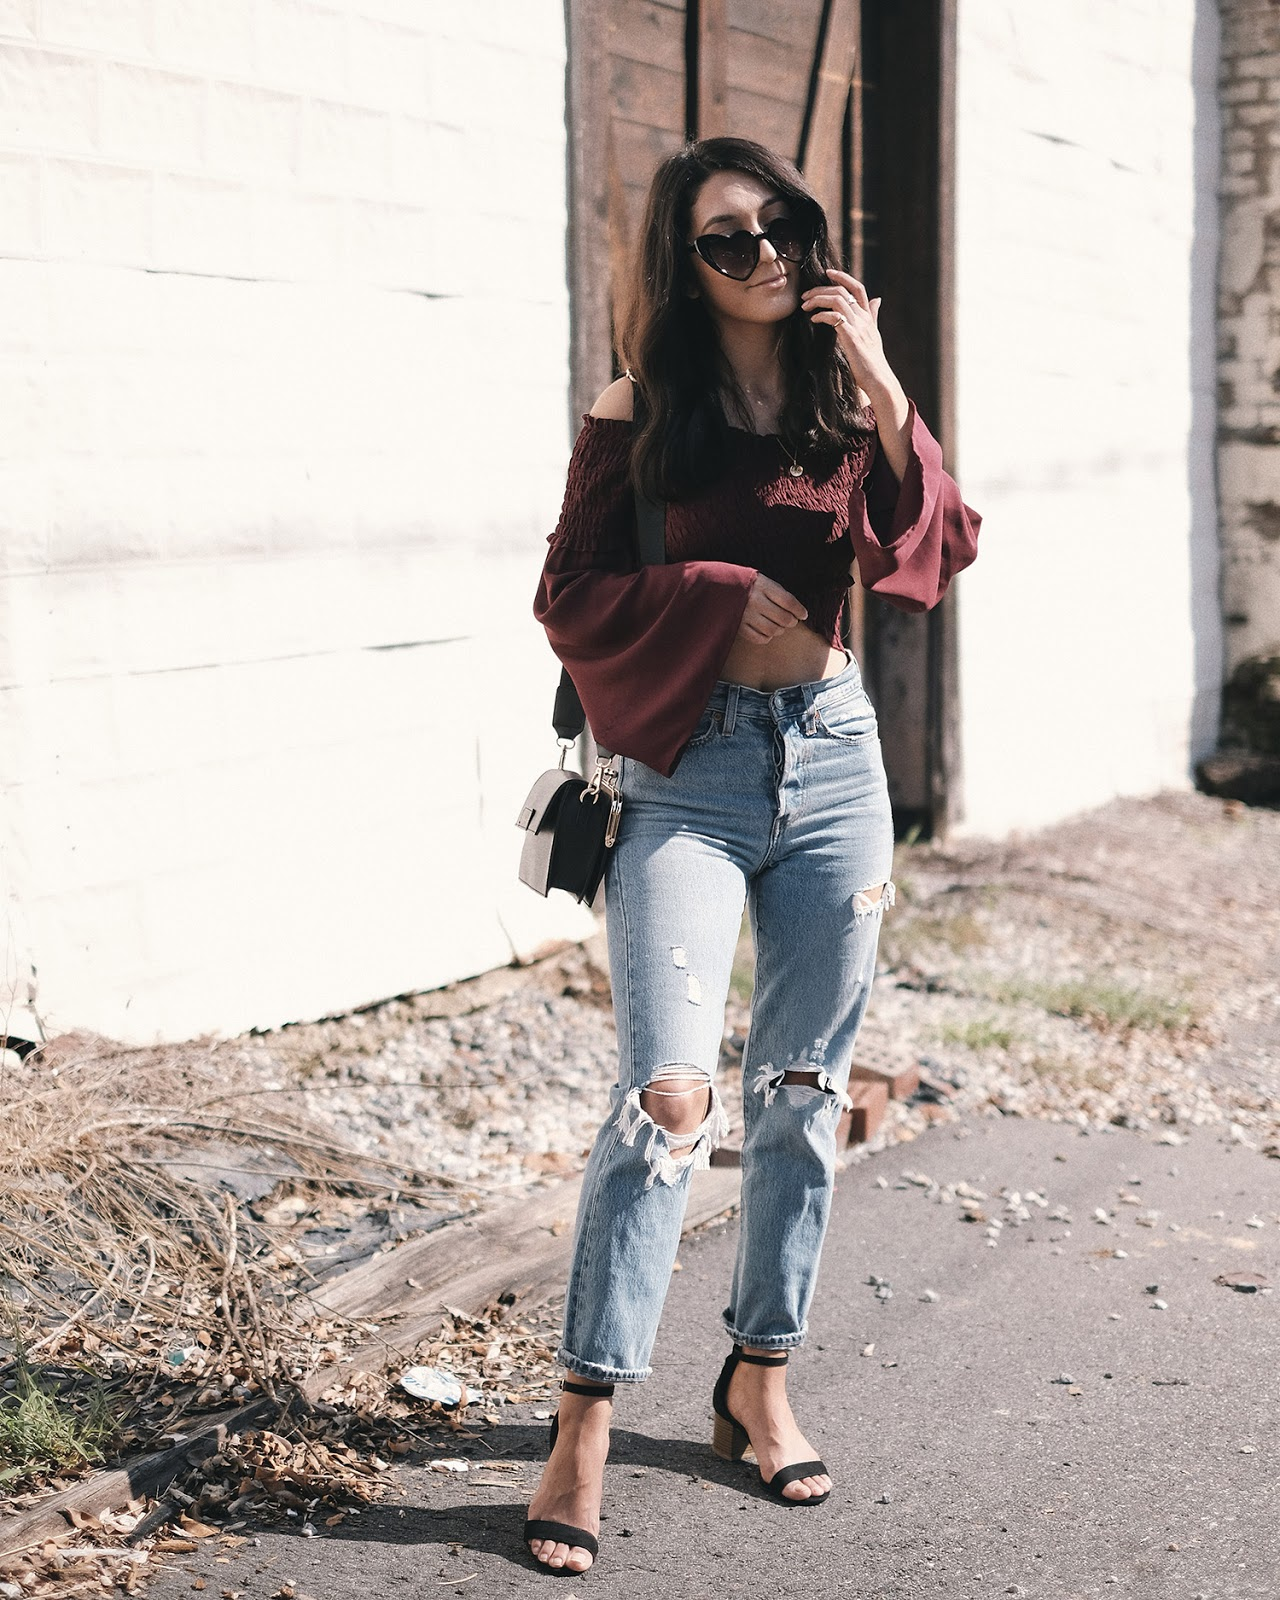 heart eye sunglasses, rue21 off the shoulder top, melie bianco judy bag, levis wedgie fit authentically yours